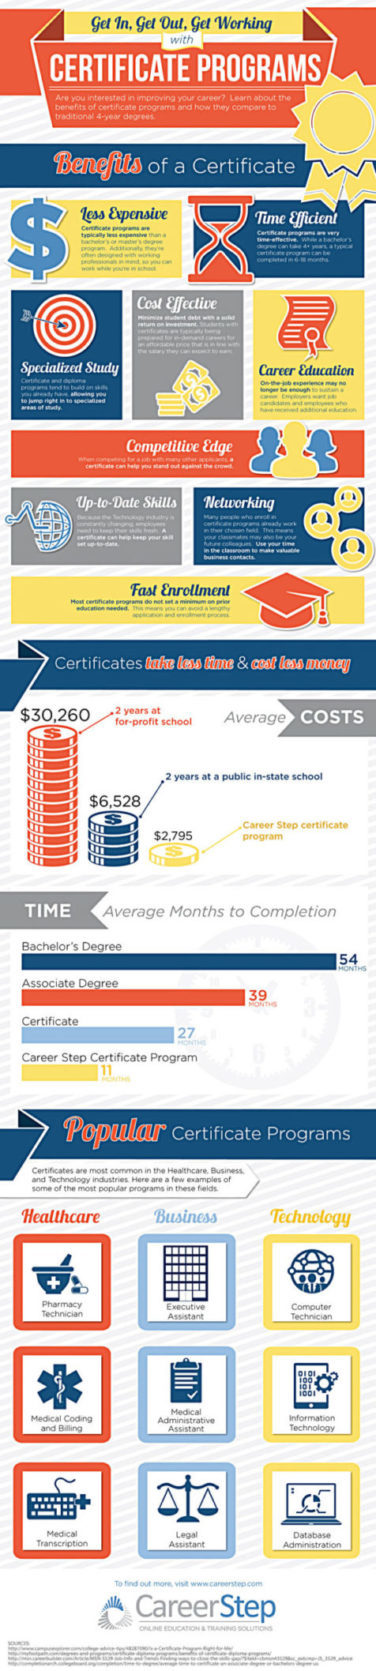 Infographic - benefits of a certificate program.